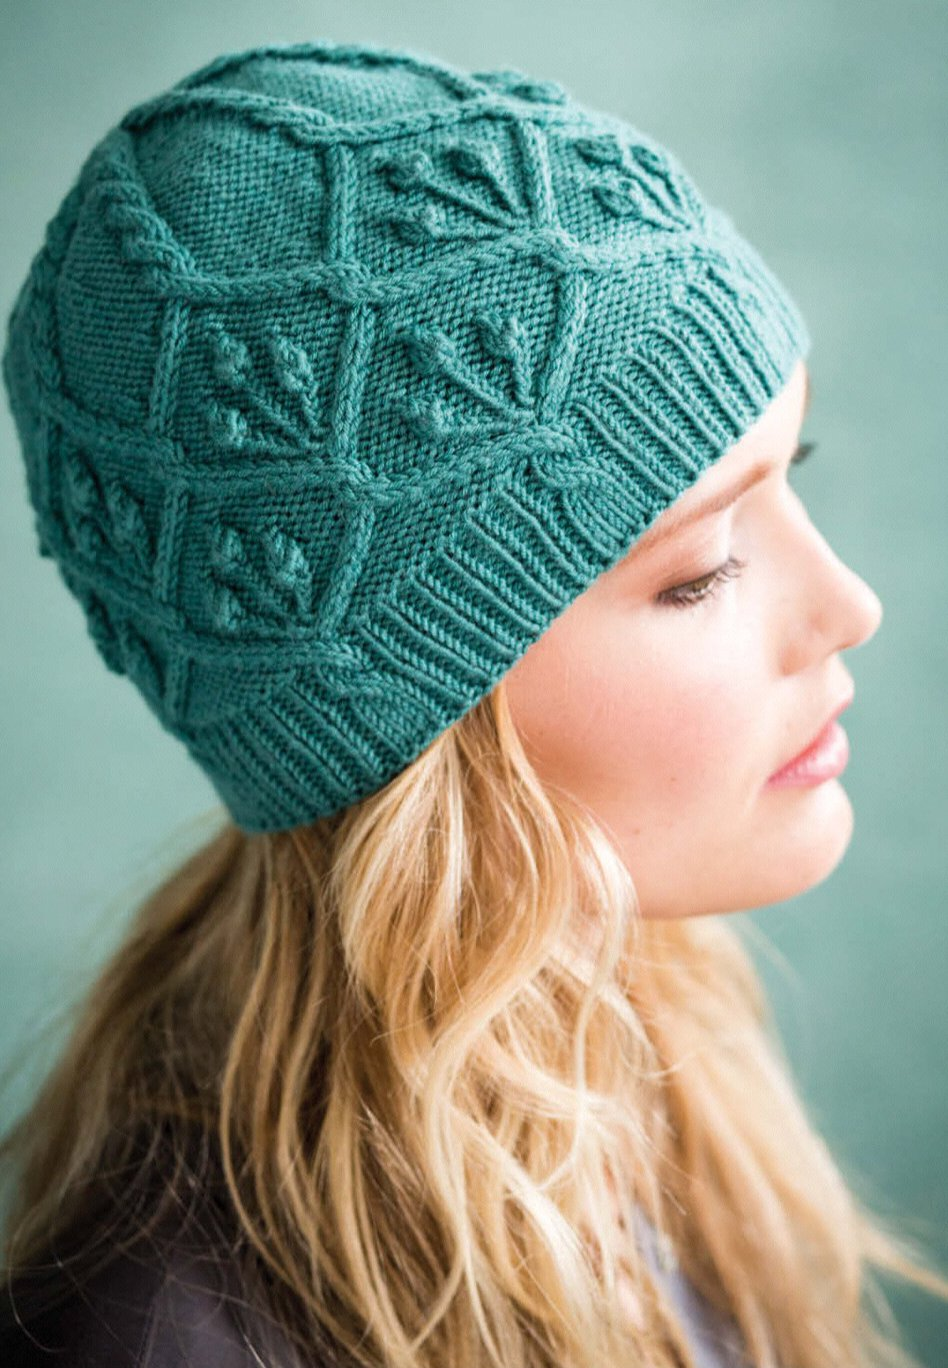 Free Knitting Pattern Ladies Hat : ????? ??????? ??? ?????? ?? Vogue ????? 2015 - ????.??